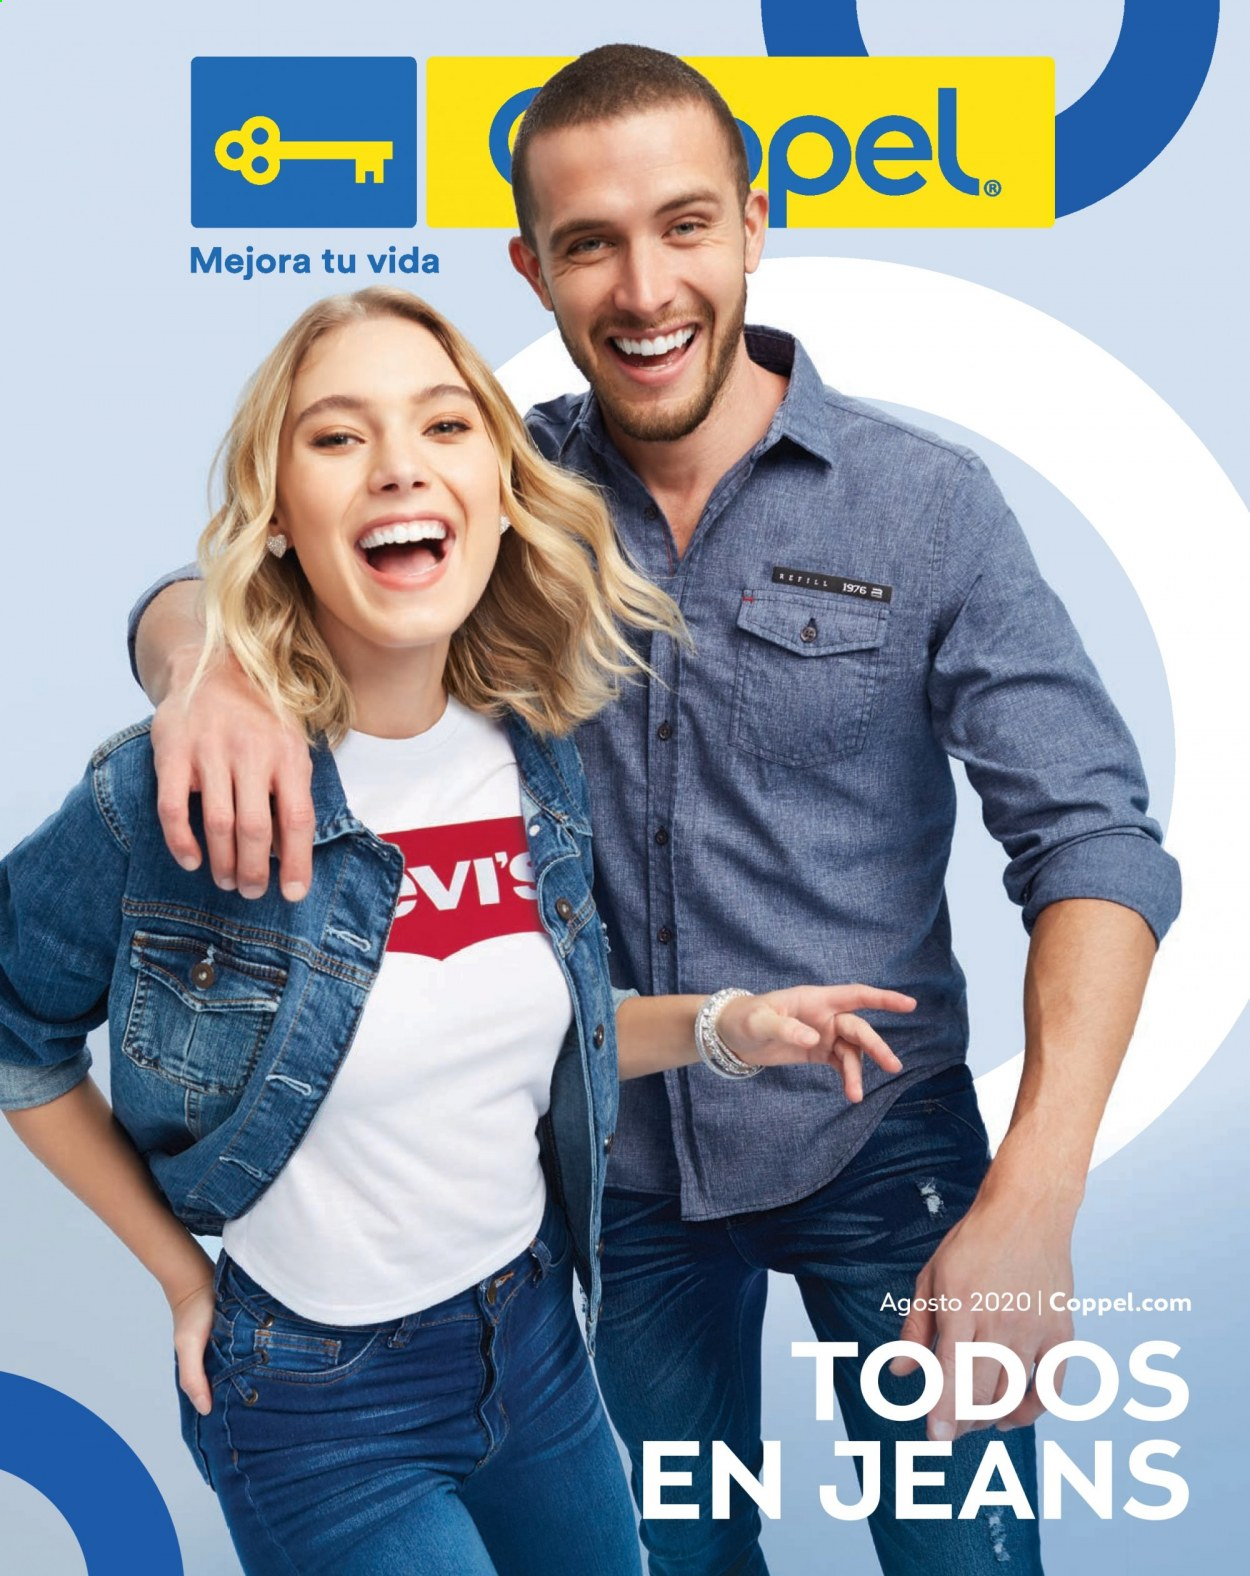 Folleto actual Coppel - 1.8.2020 - 31.8.2020 - Ventas - jeans. Página 1.